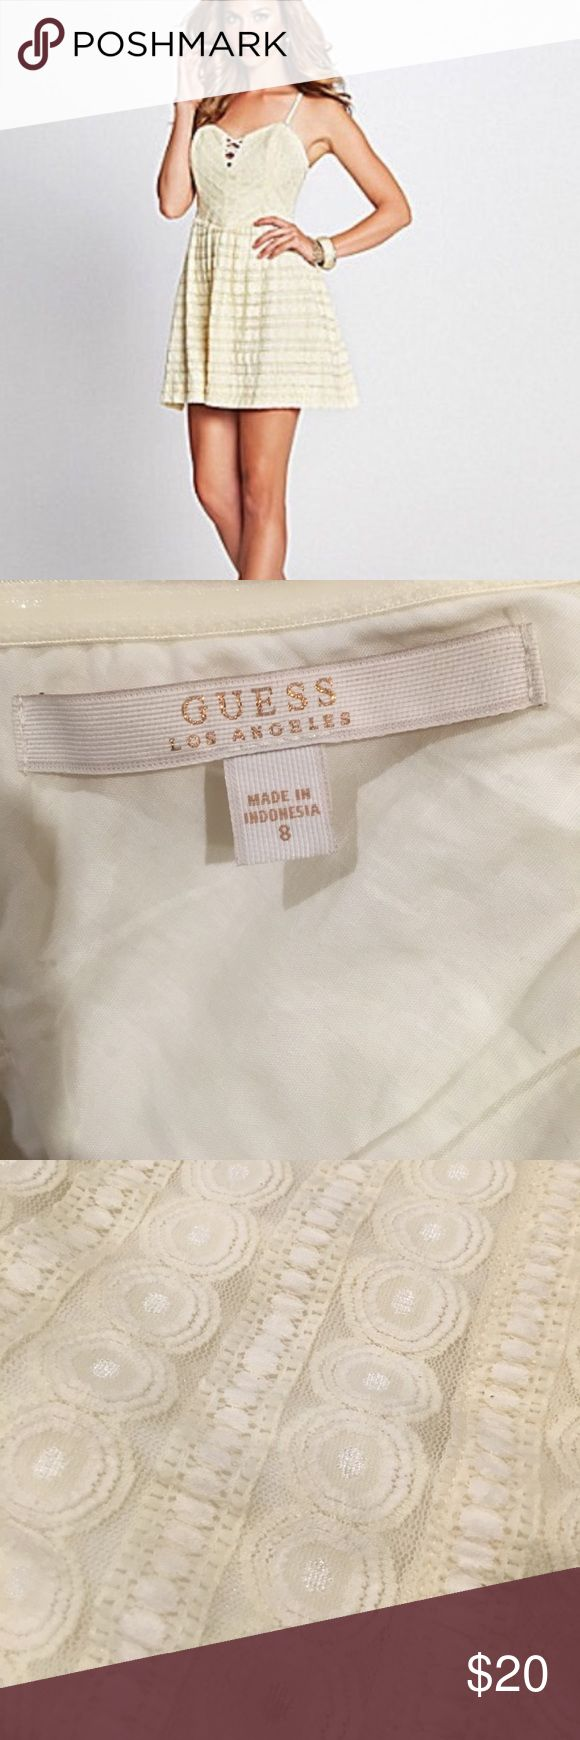 Guess dress - size 8 Very pretty lace, great condition. Guess Dresses Mini